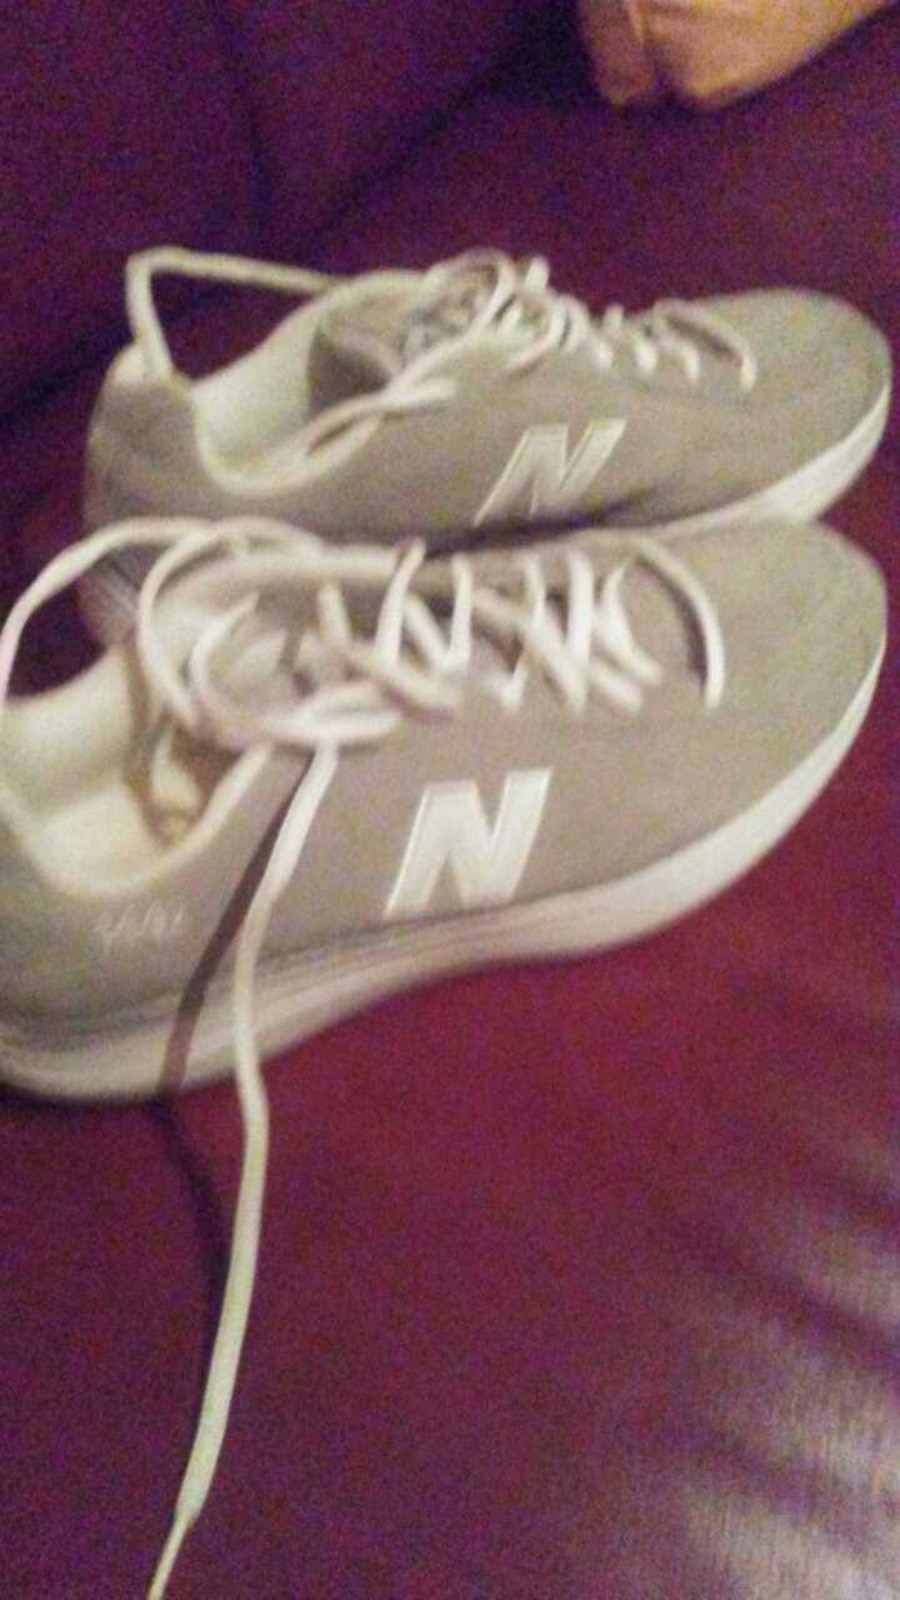 New balance shoes - Thayer